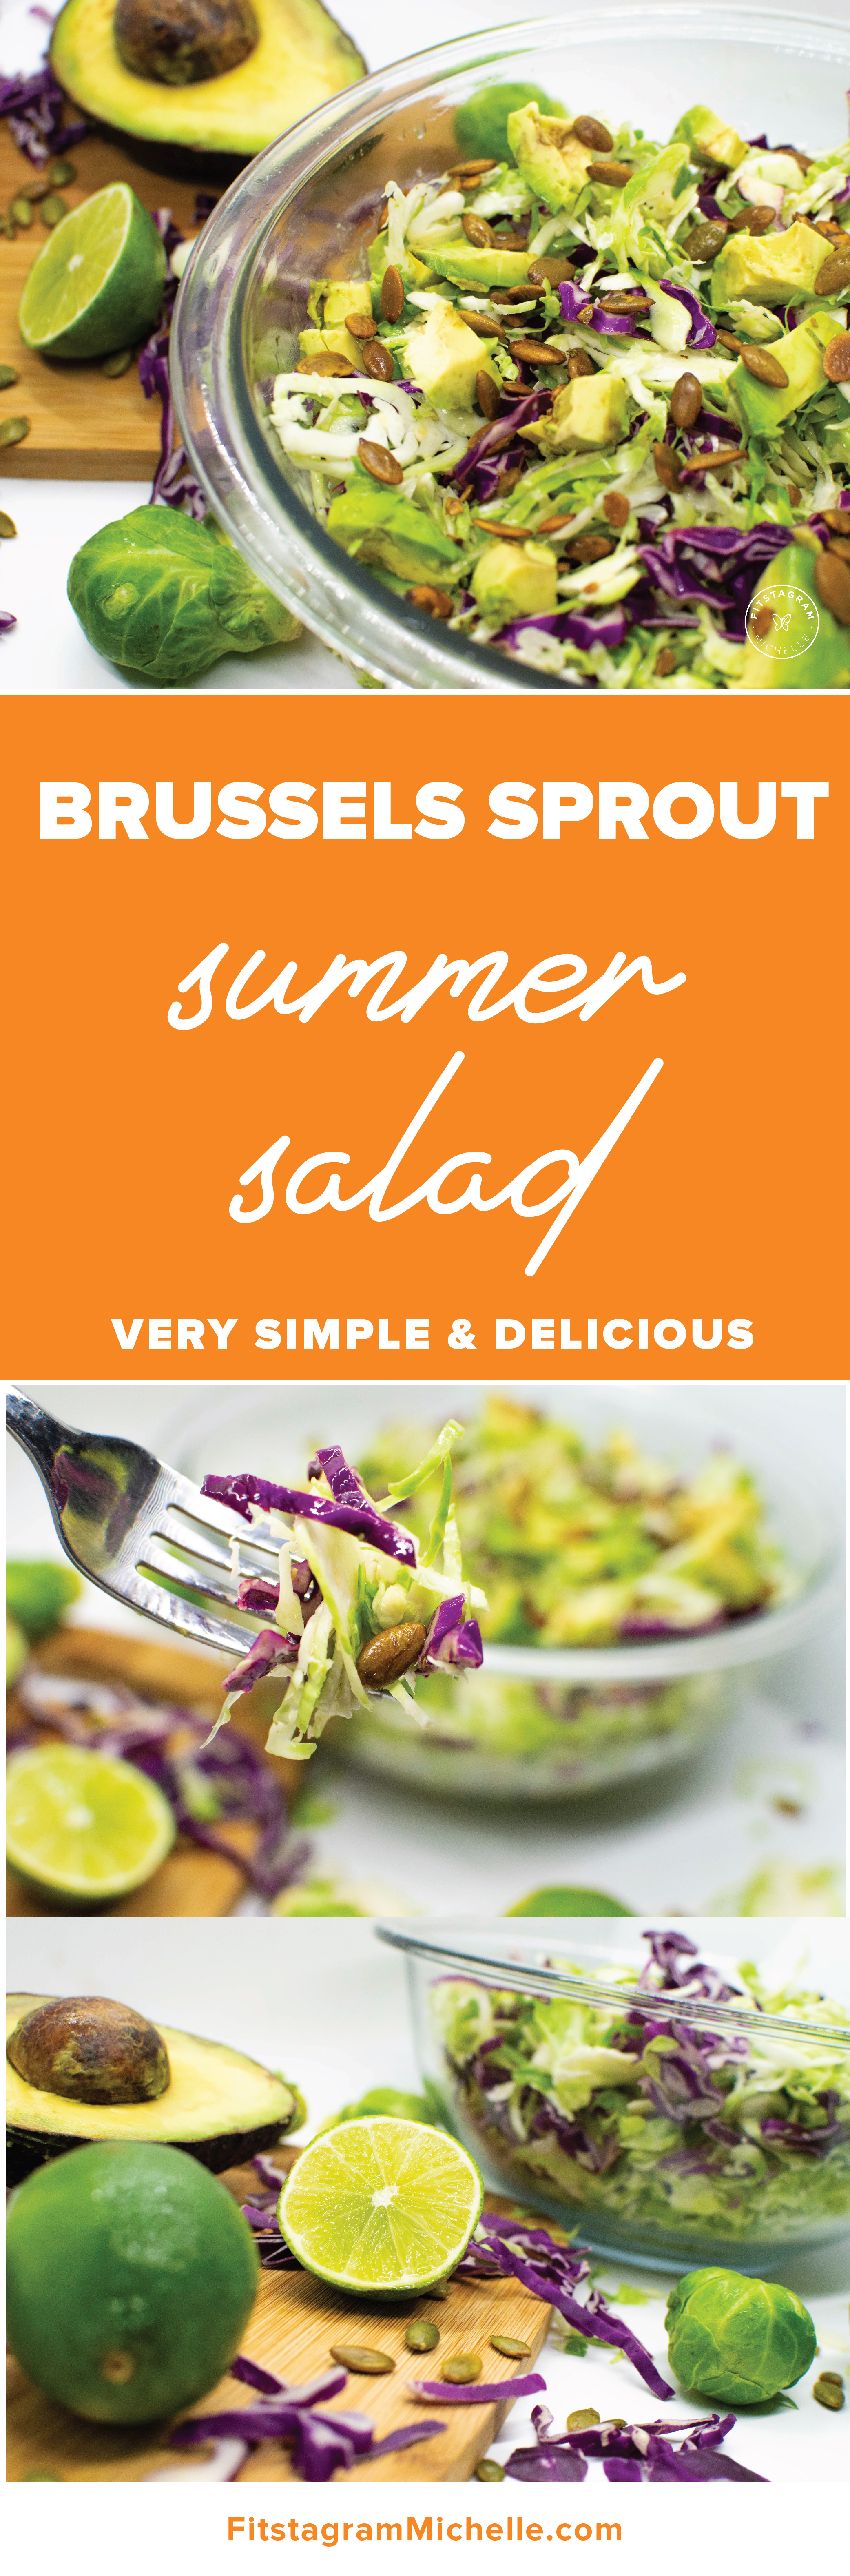 Healthy and simple salad that is nutritious and delicious! This 4 ingredient salad includes avocado and lime for a summery taste.